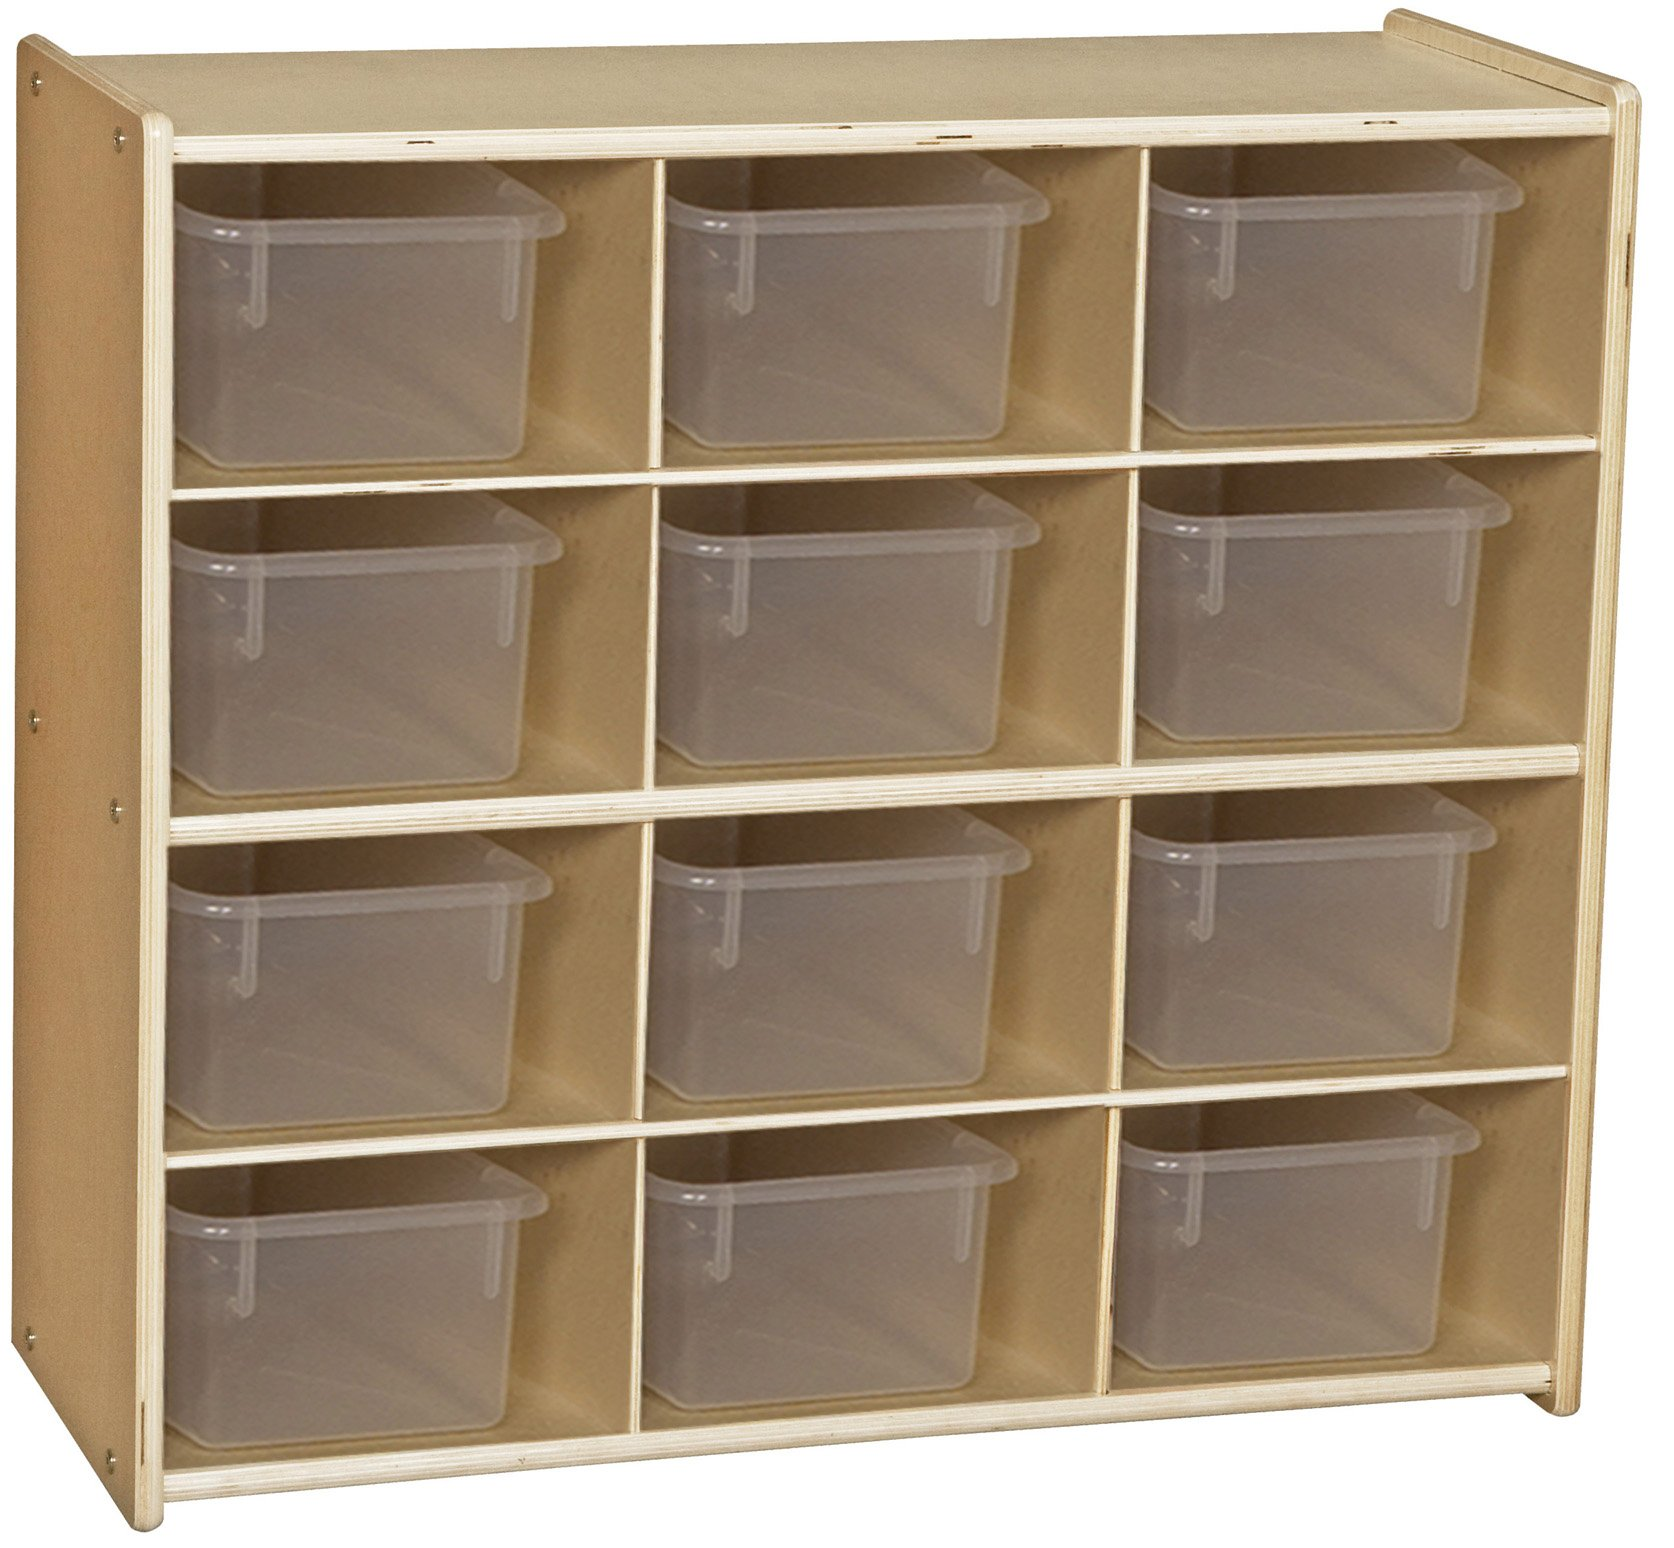 Contender C16121 Baltic Birch 12-Cubby Storage Unit with Clear Tubs, RTA (Pack of 12)